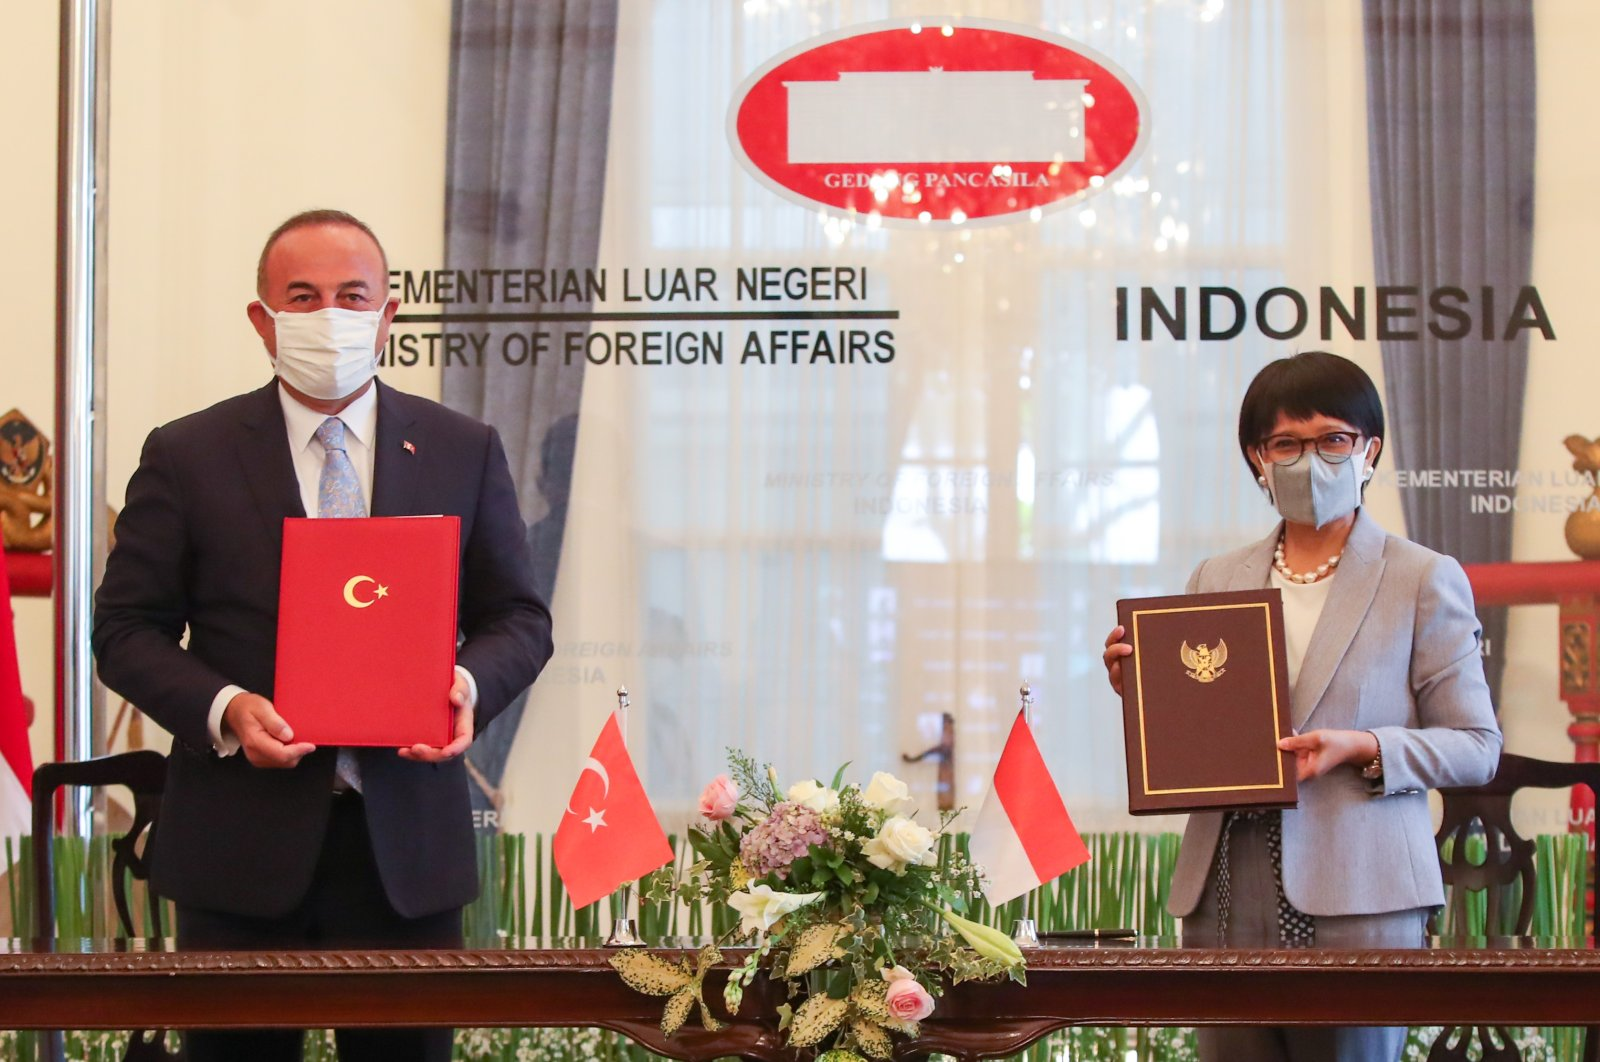 Turkey's Foreign Minister Mevlüt Çavuşoğlu (L) and his Indonesian counterpart Retno Marsudi sign a MoU in Jakarta, Indonesia, Dec. 22, 2020. (AA Photo)